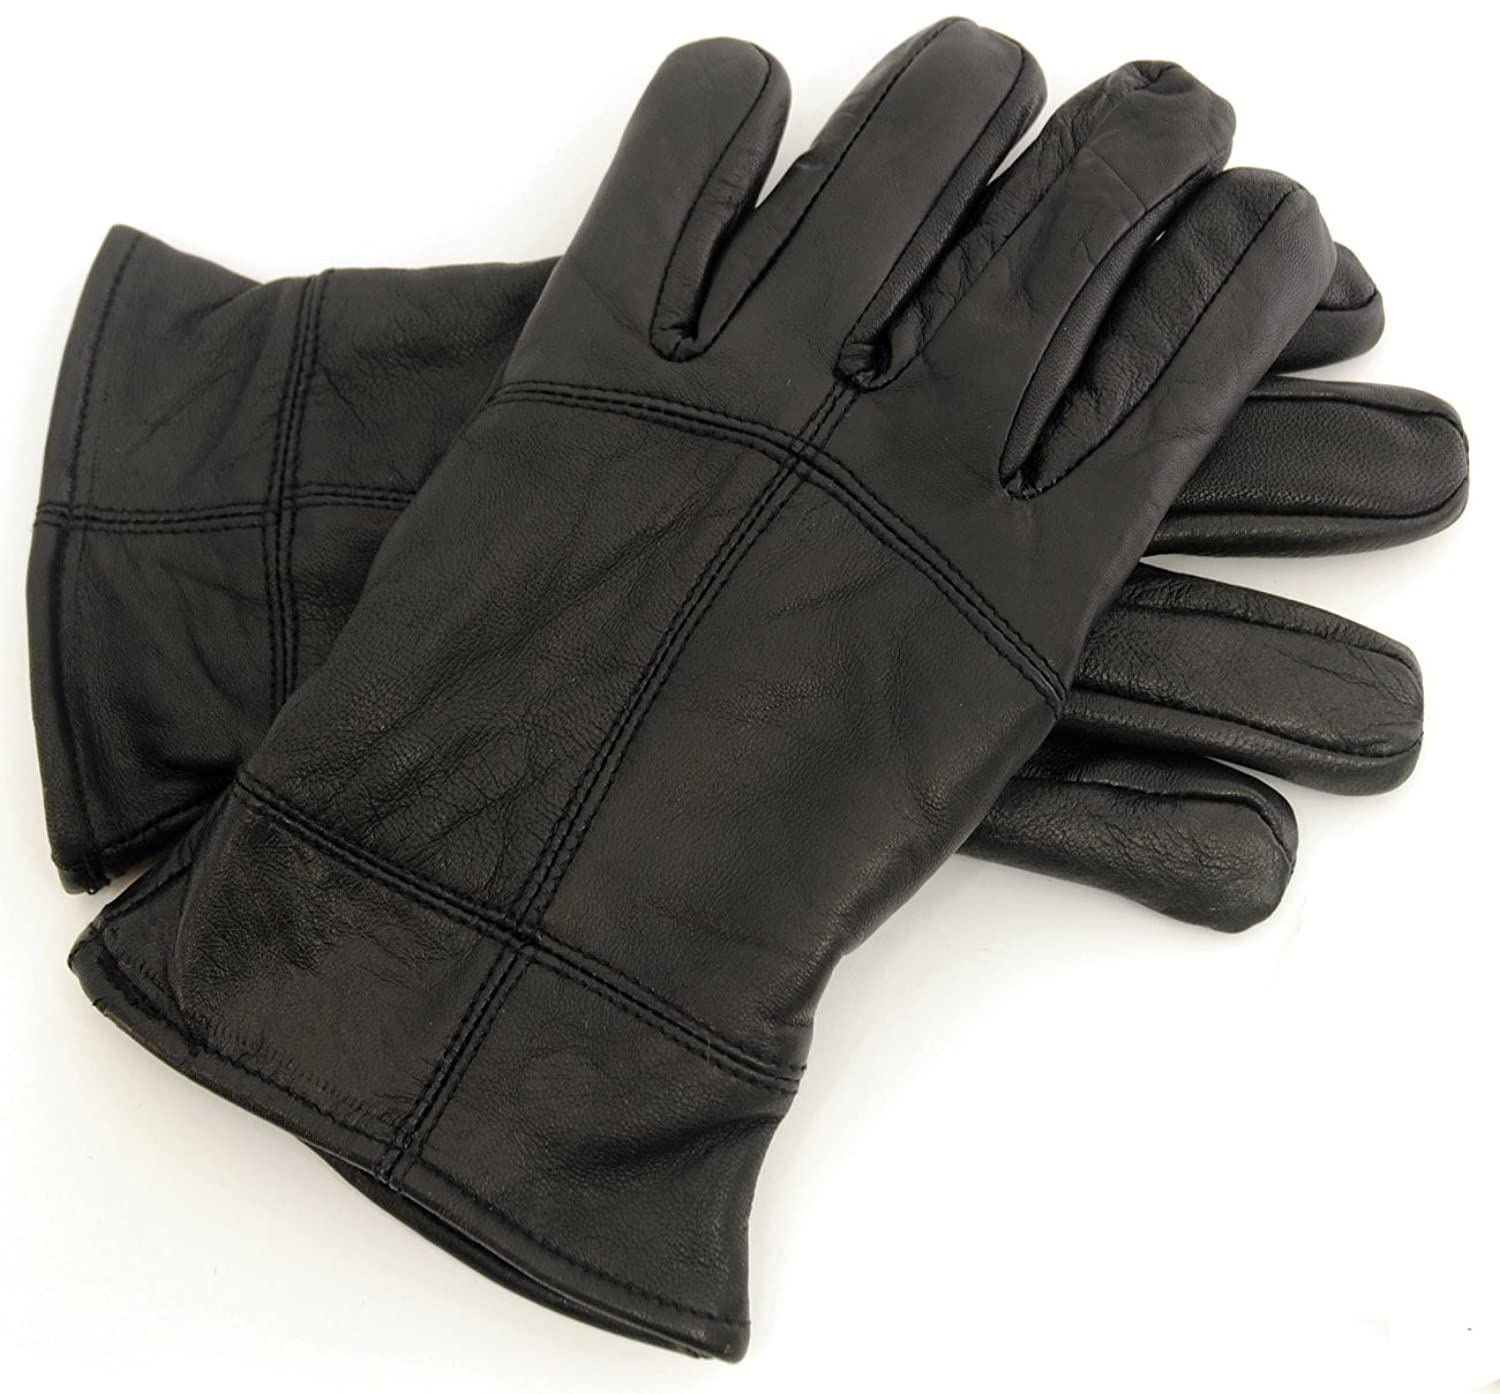 Ladies thermal leather gloves uk - Mens Thinsulate Thermal Black Sheepskin Leather Gloves Ski Warm Winter Snow Boys Gents Accessories Size Uk M L Amazon Co Uk Clothing